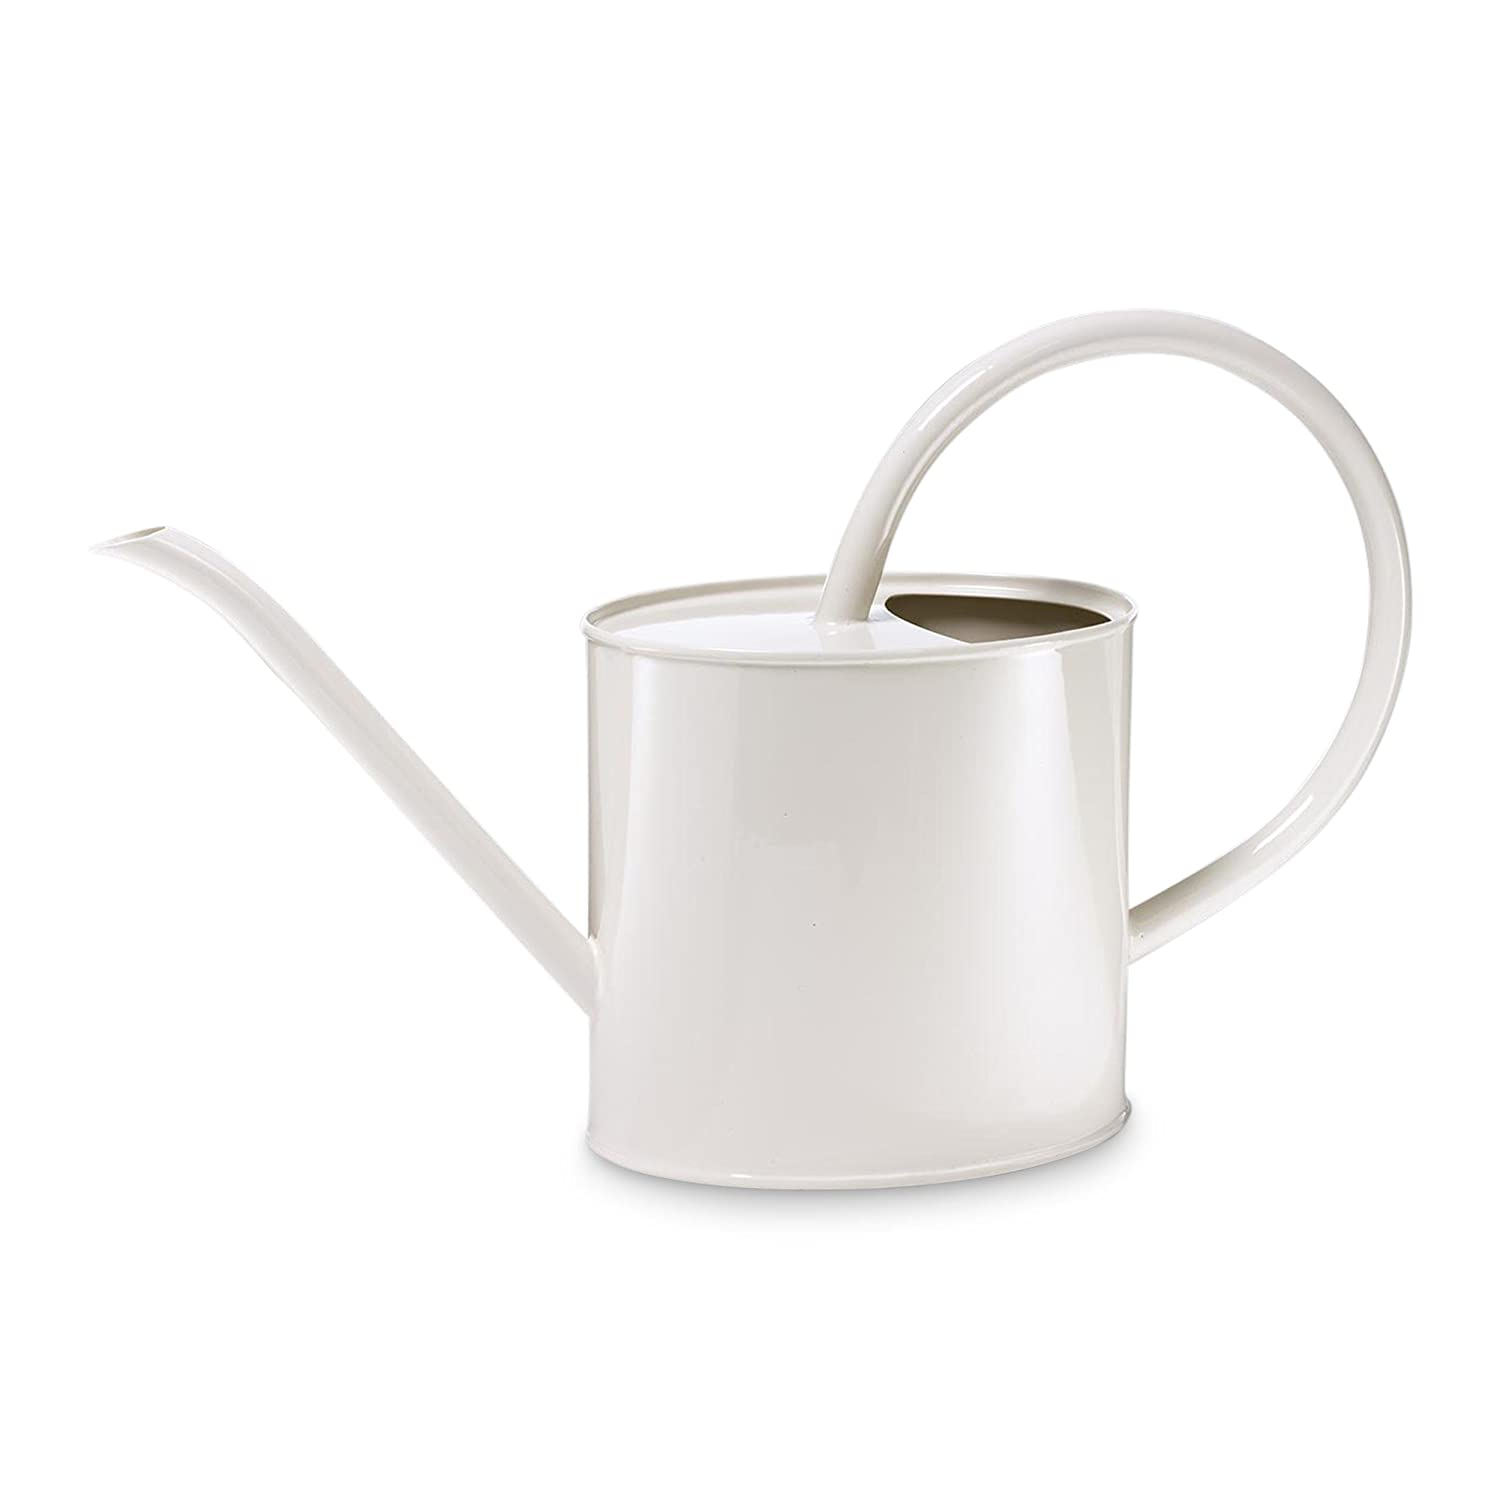 Painted metal watering can, cream white, 1.5 litres Fivekorn